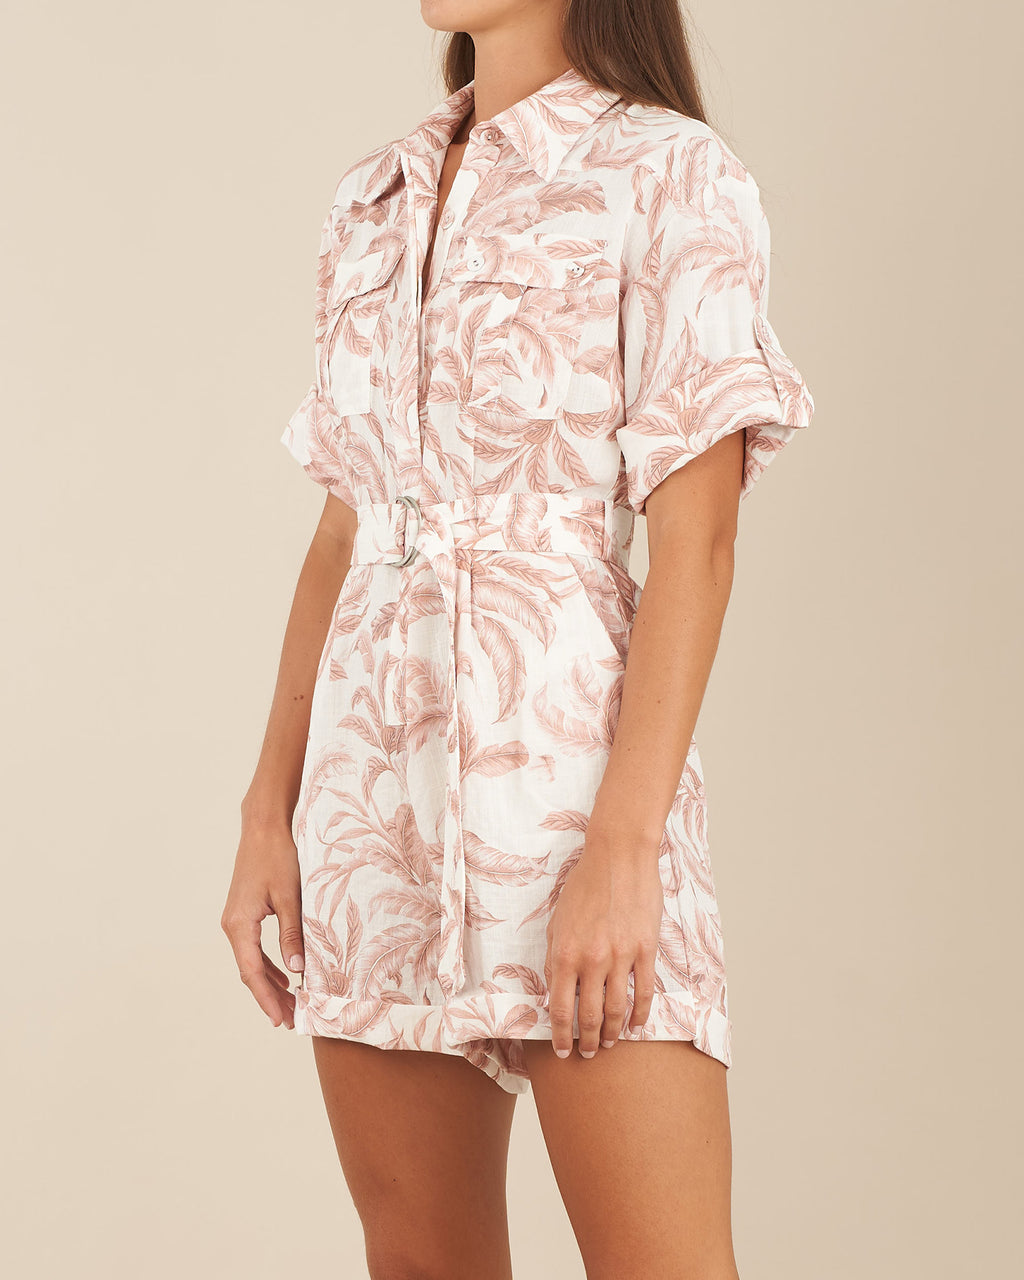 Saint-Tropez Playsuit